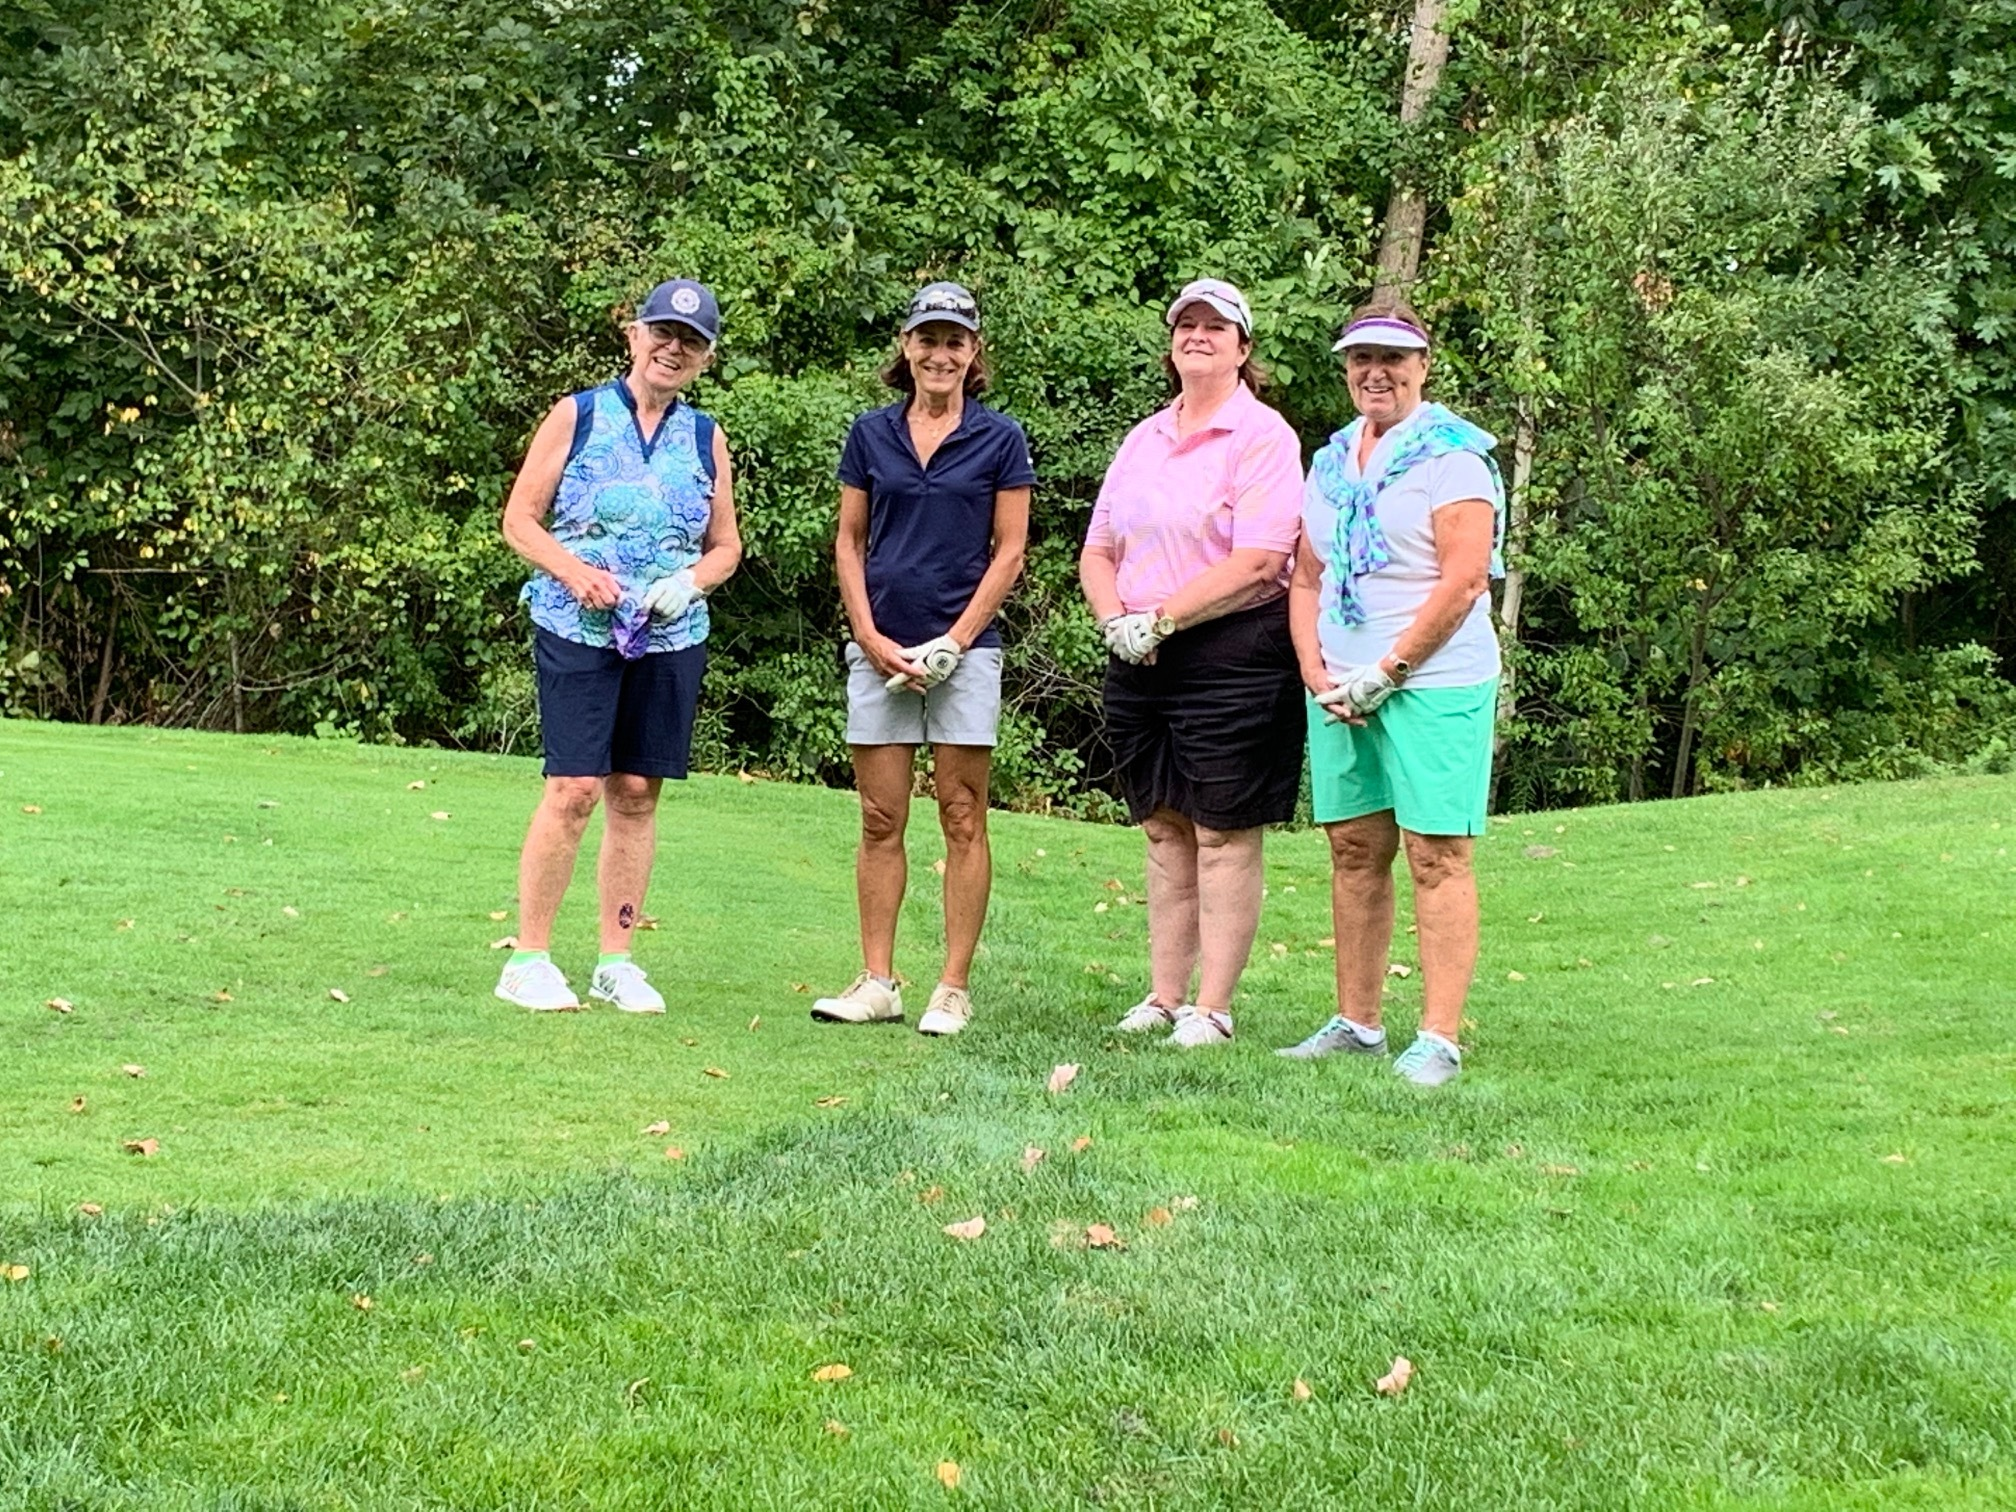 THE 28TH ANNUAL CATALDO SWING FORE HOPE GOLF TOURNAMENT gallery image #5